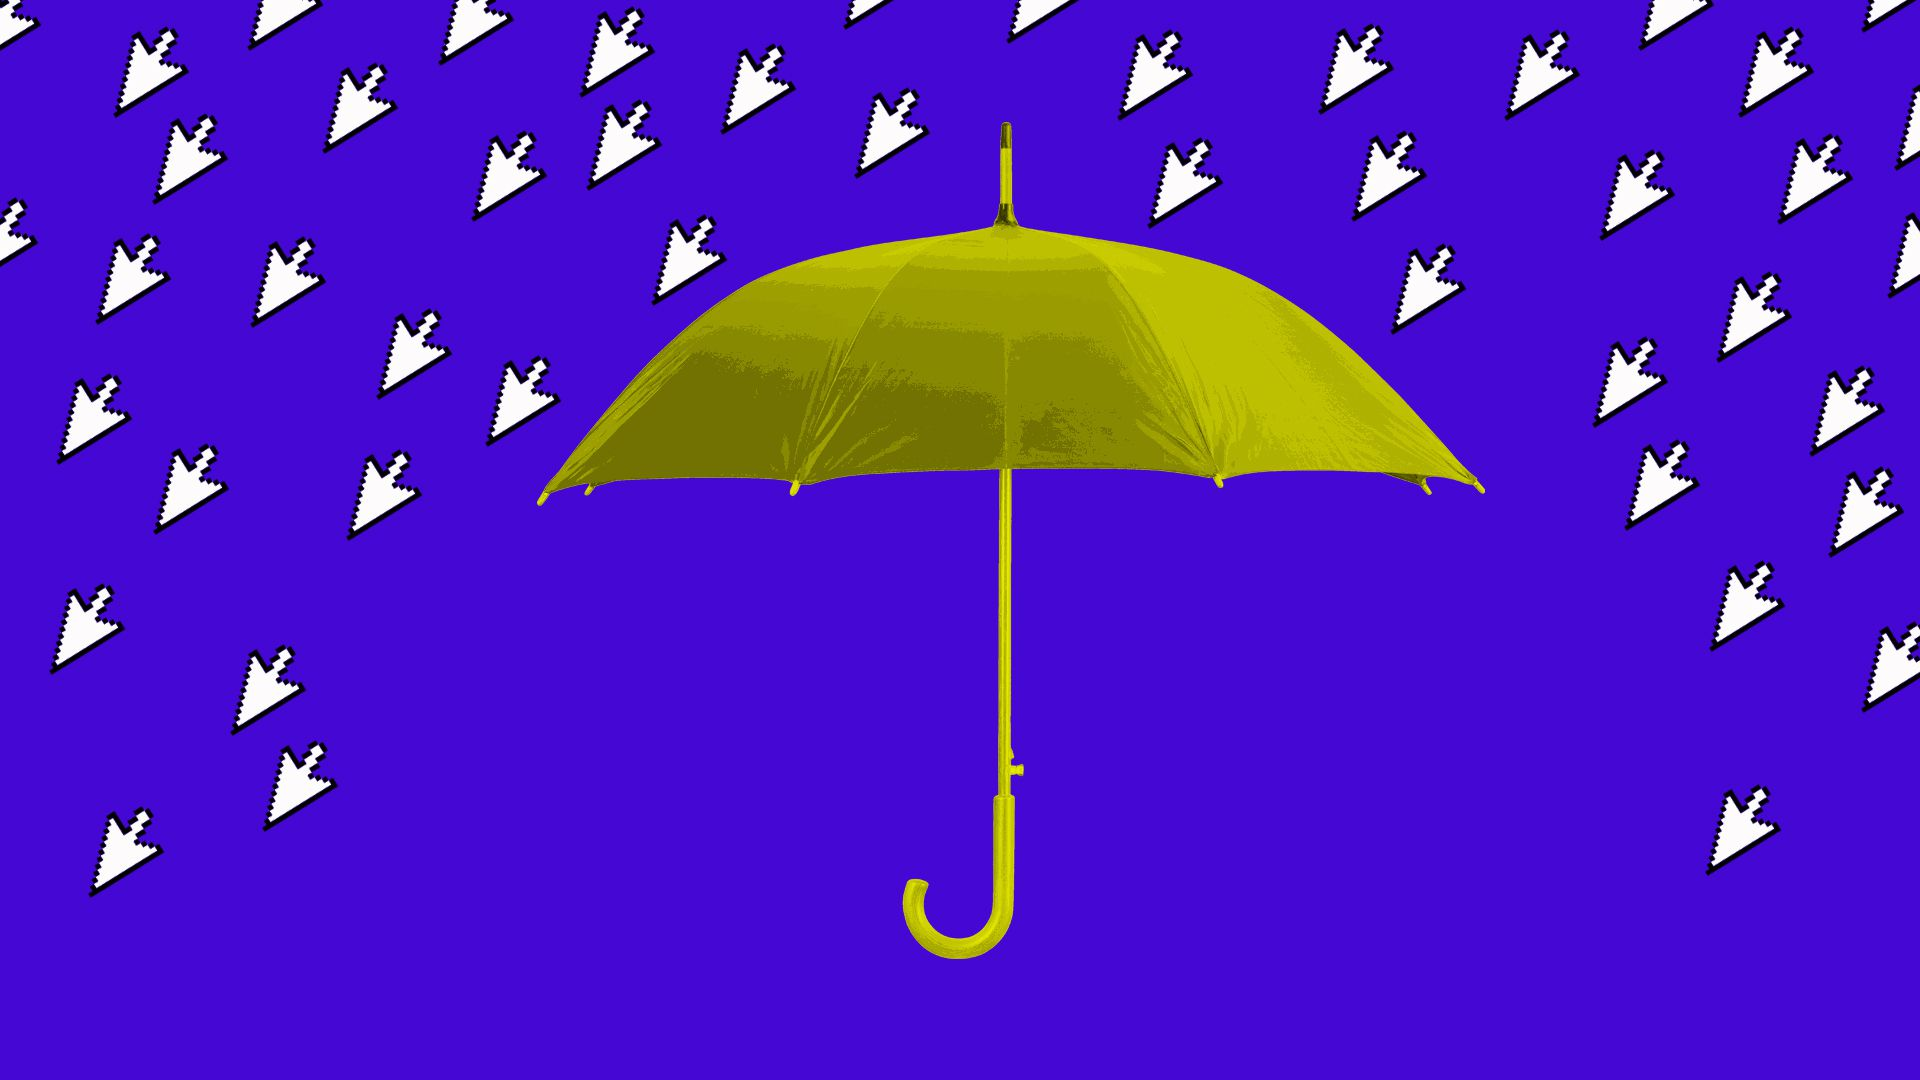 Illustration shows umbrella blocking out mouse cursors as rain drops before blue background.